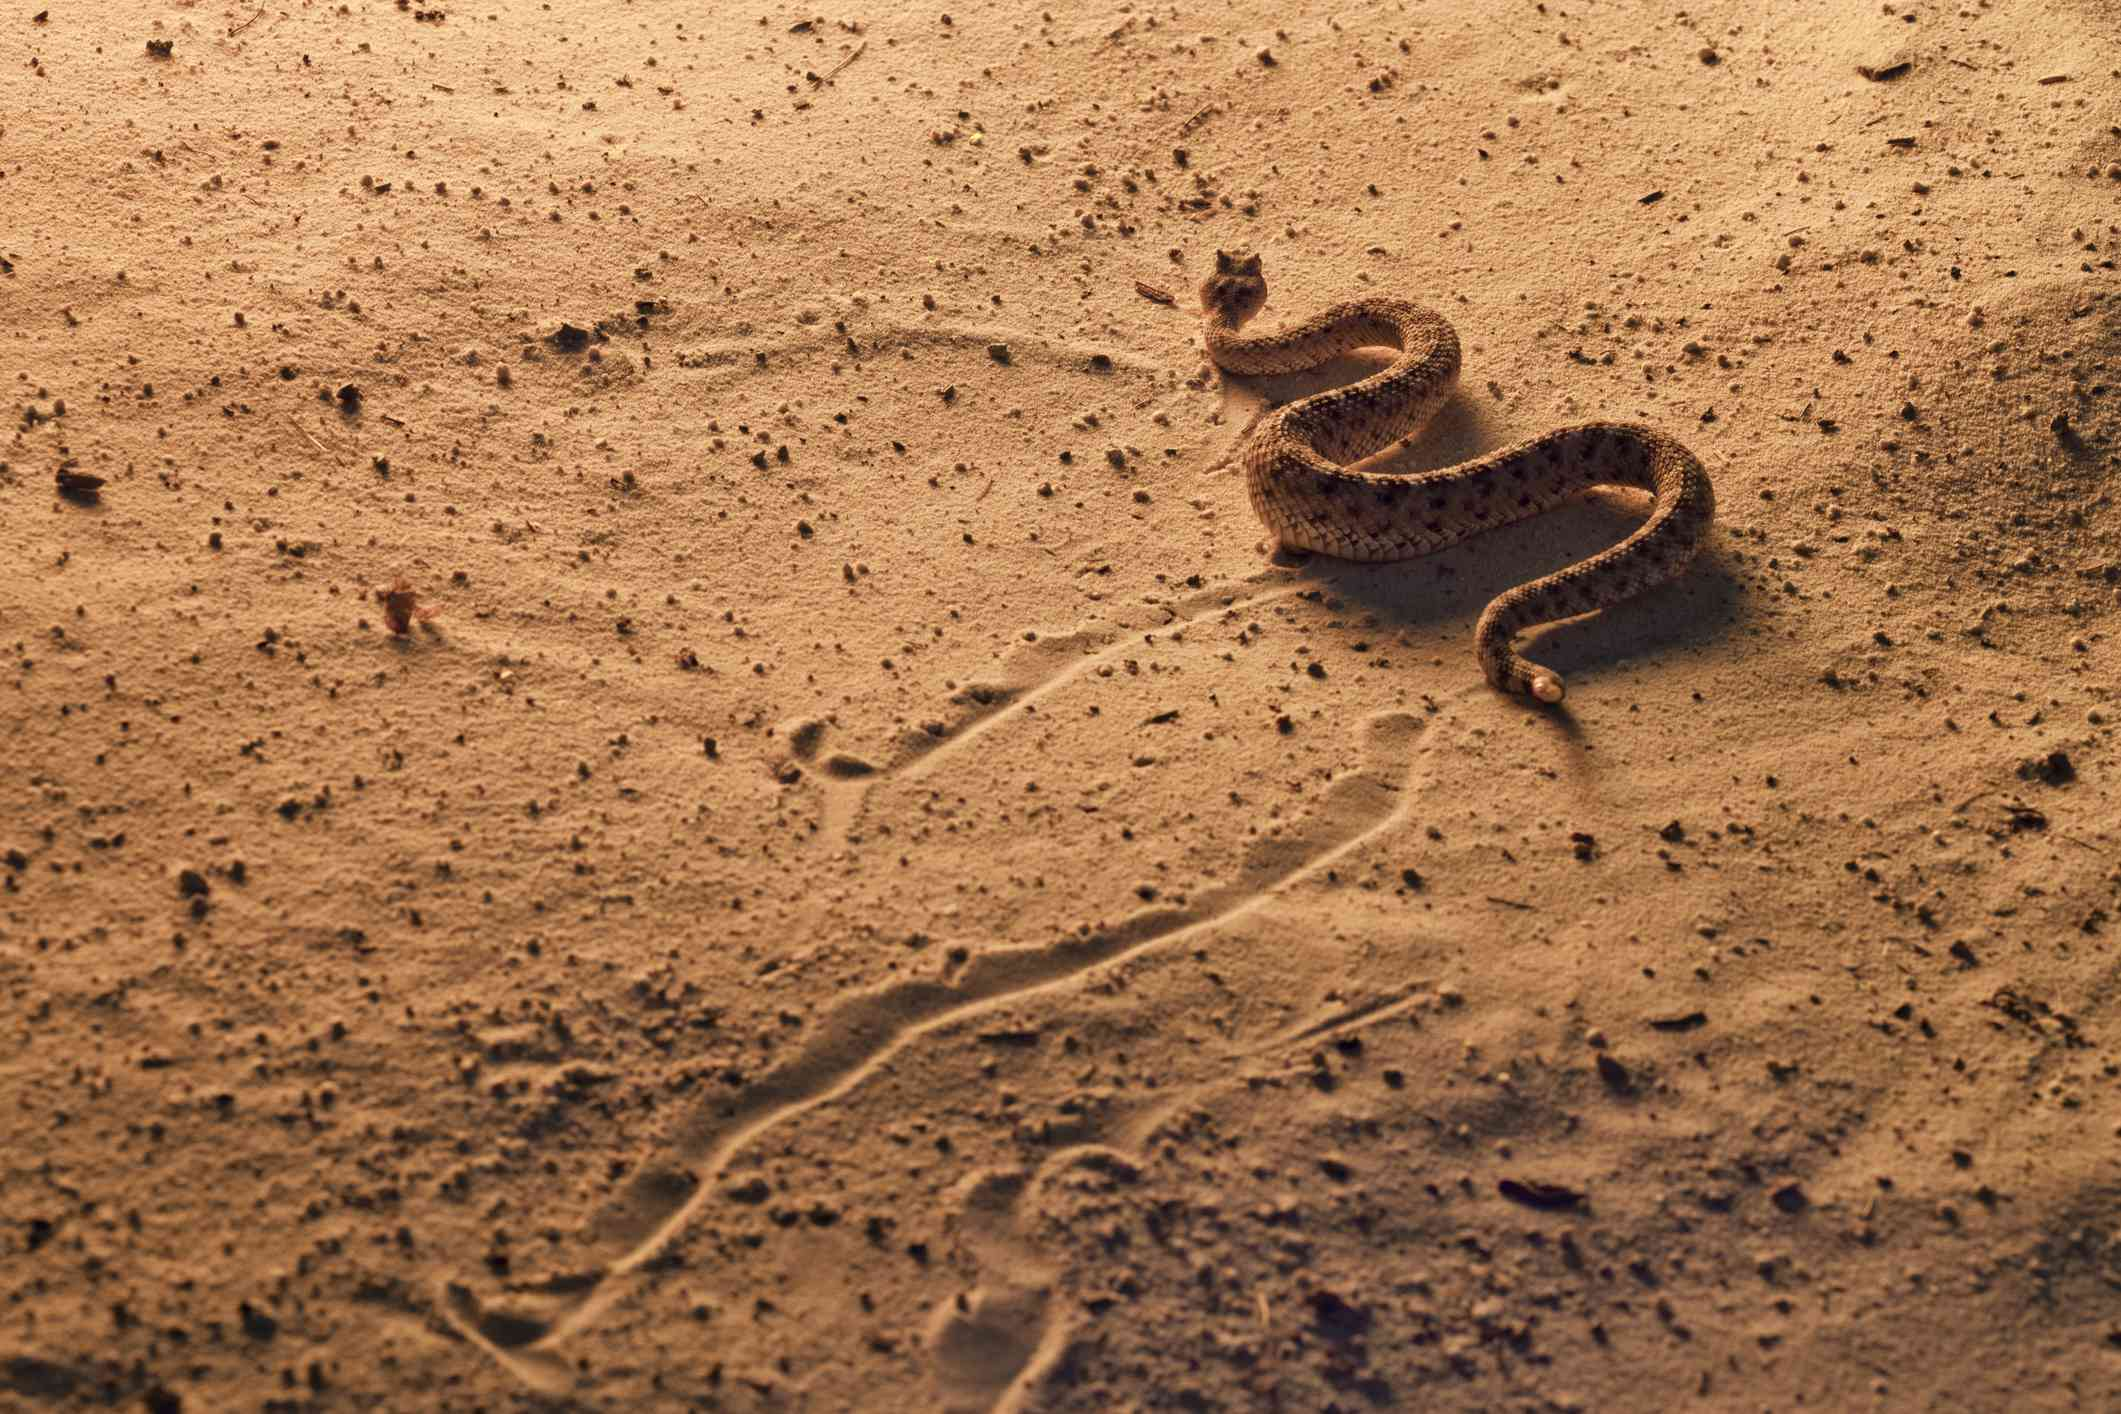 Sidewinder Rattlesnake, Crotalus cerastes, Southern Arizona. Side-winding locomotion across sand dunes at sunset. Controlled situation.